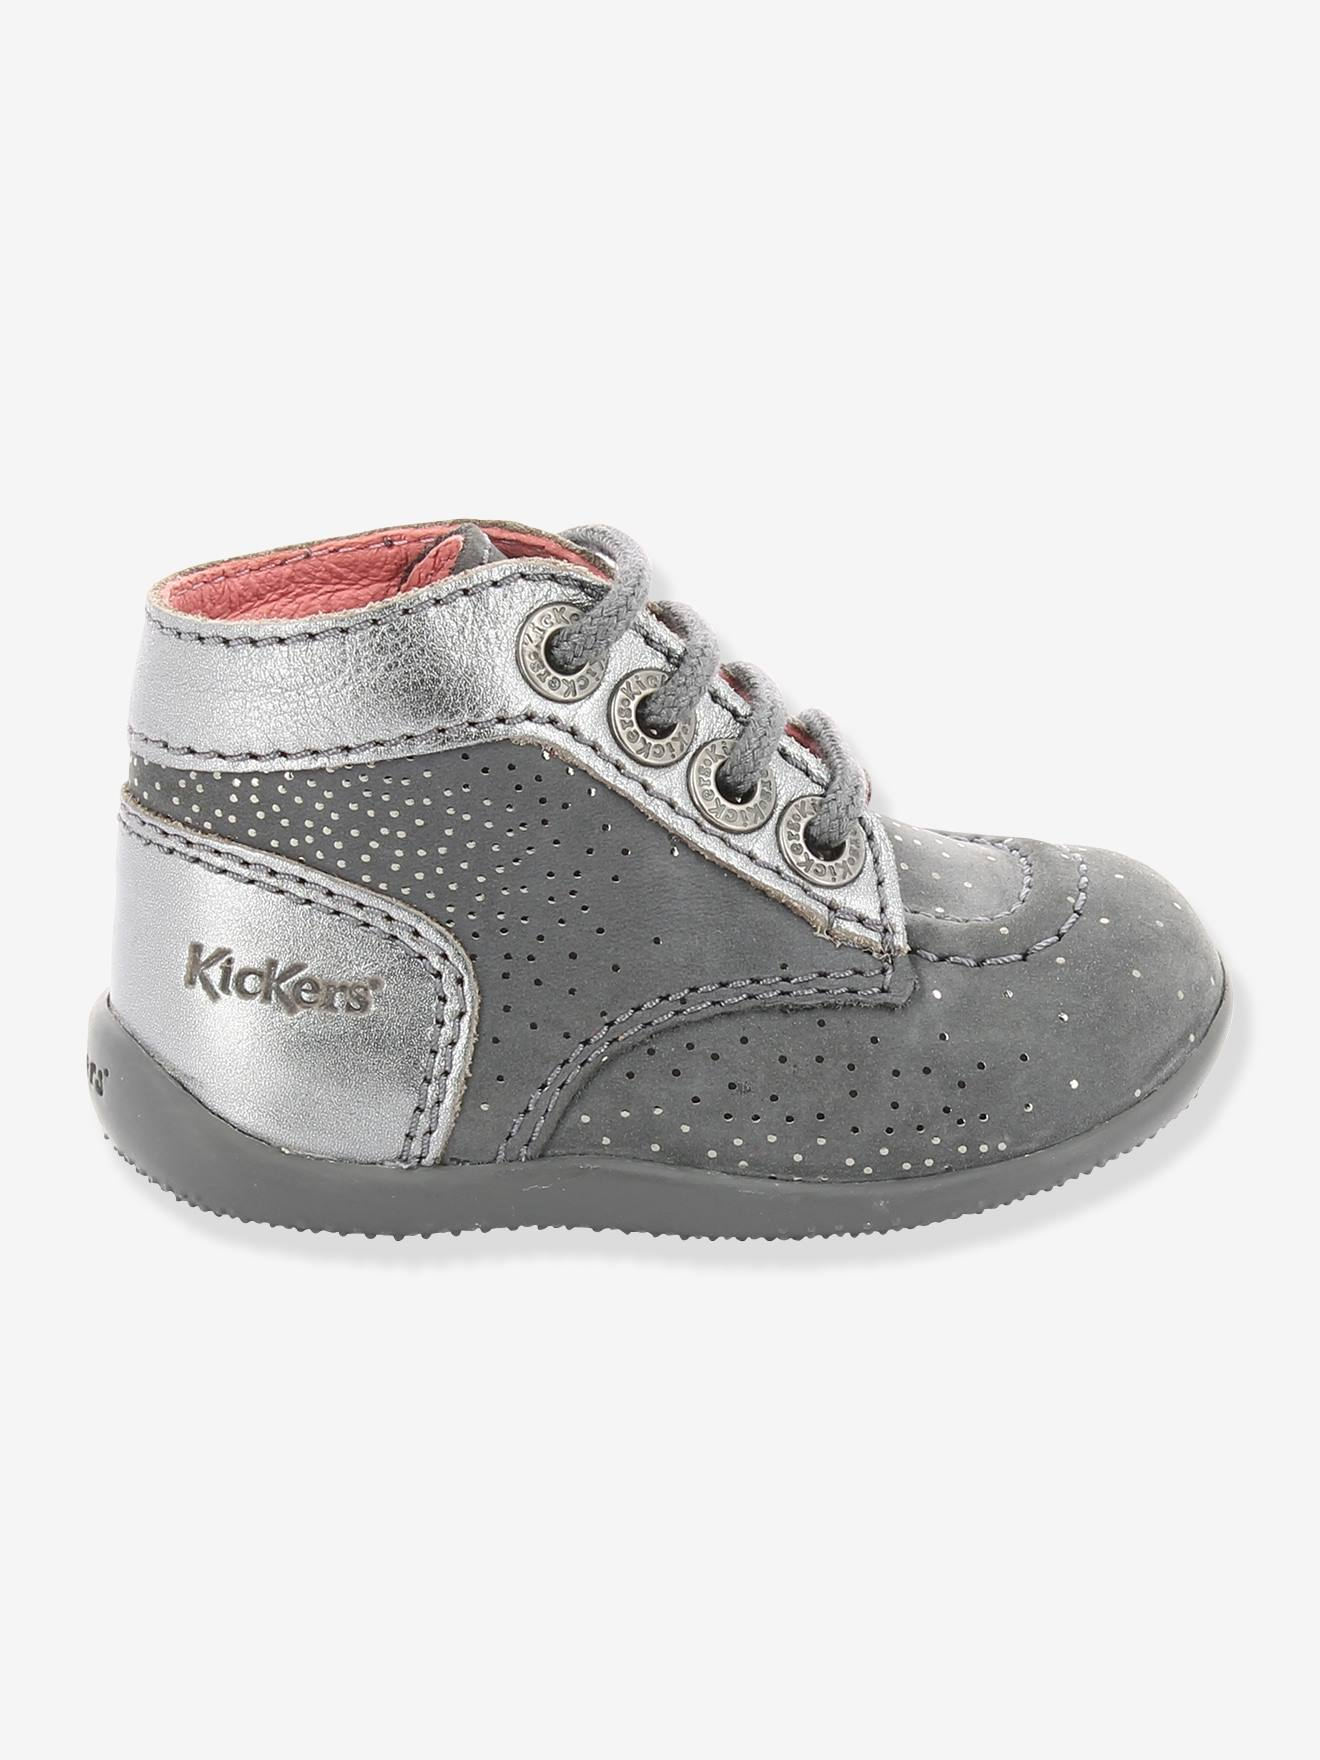 036a676e48073 chaussures bebe kickers fille